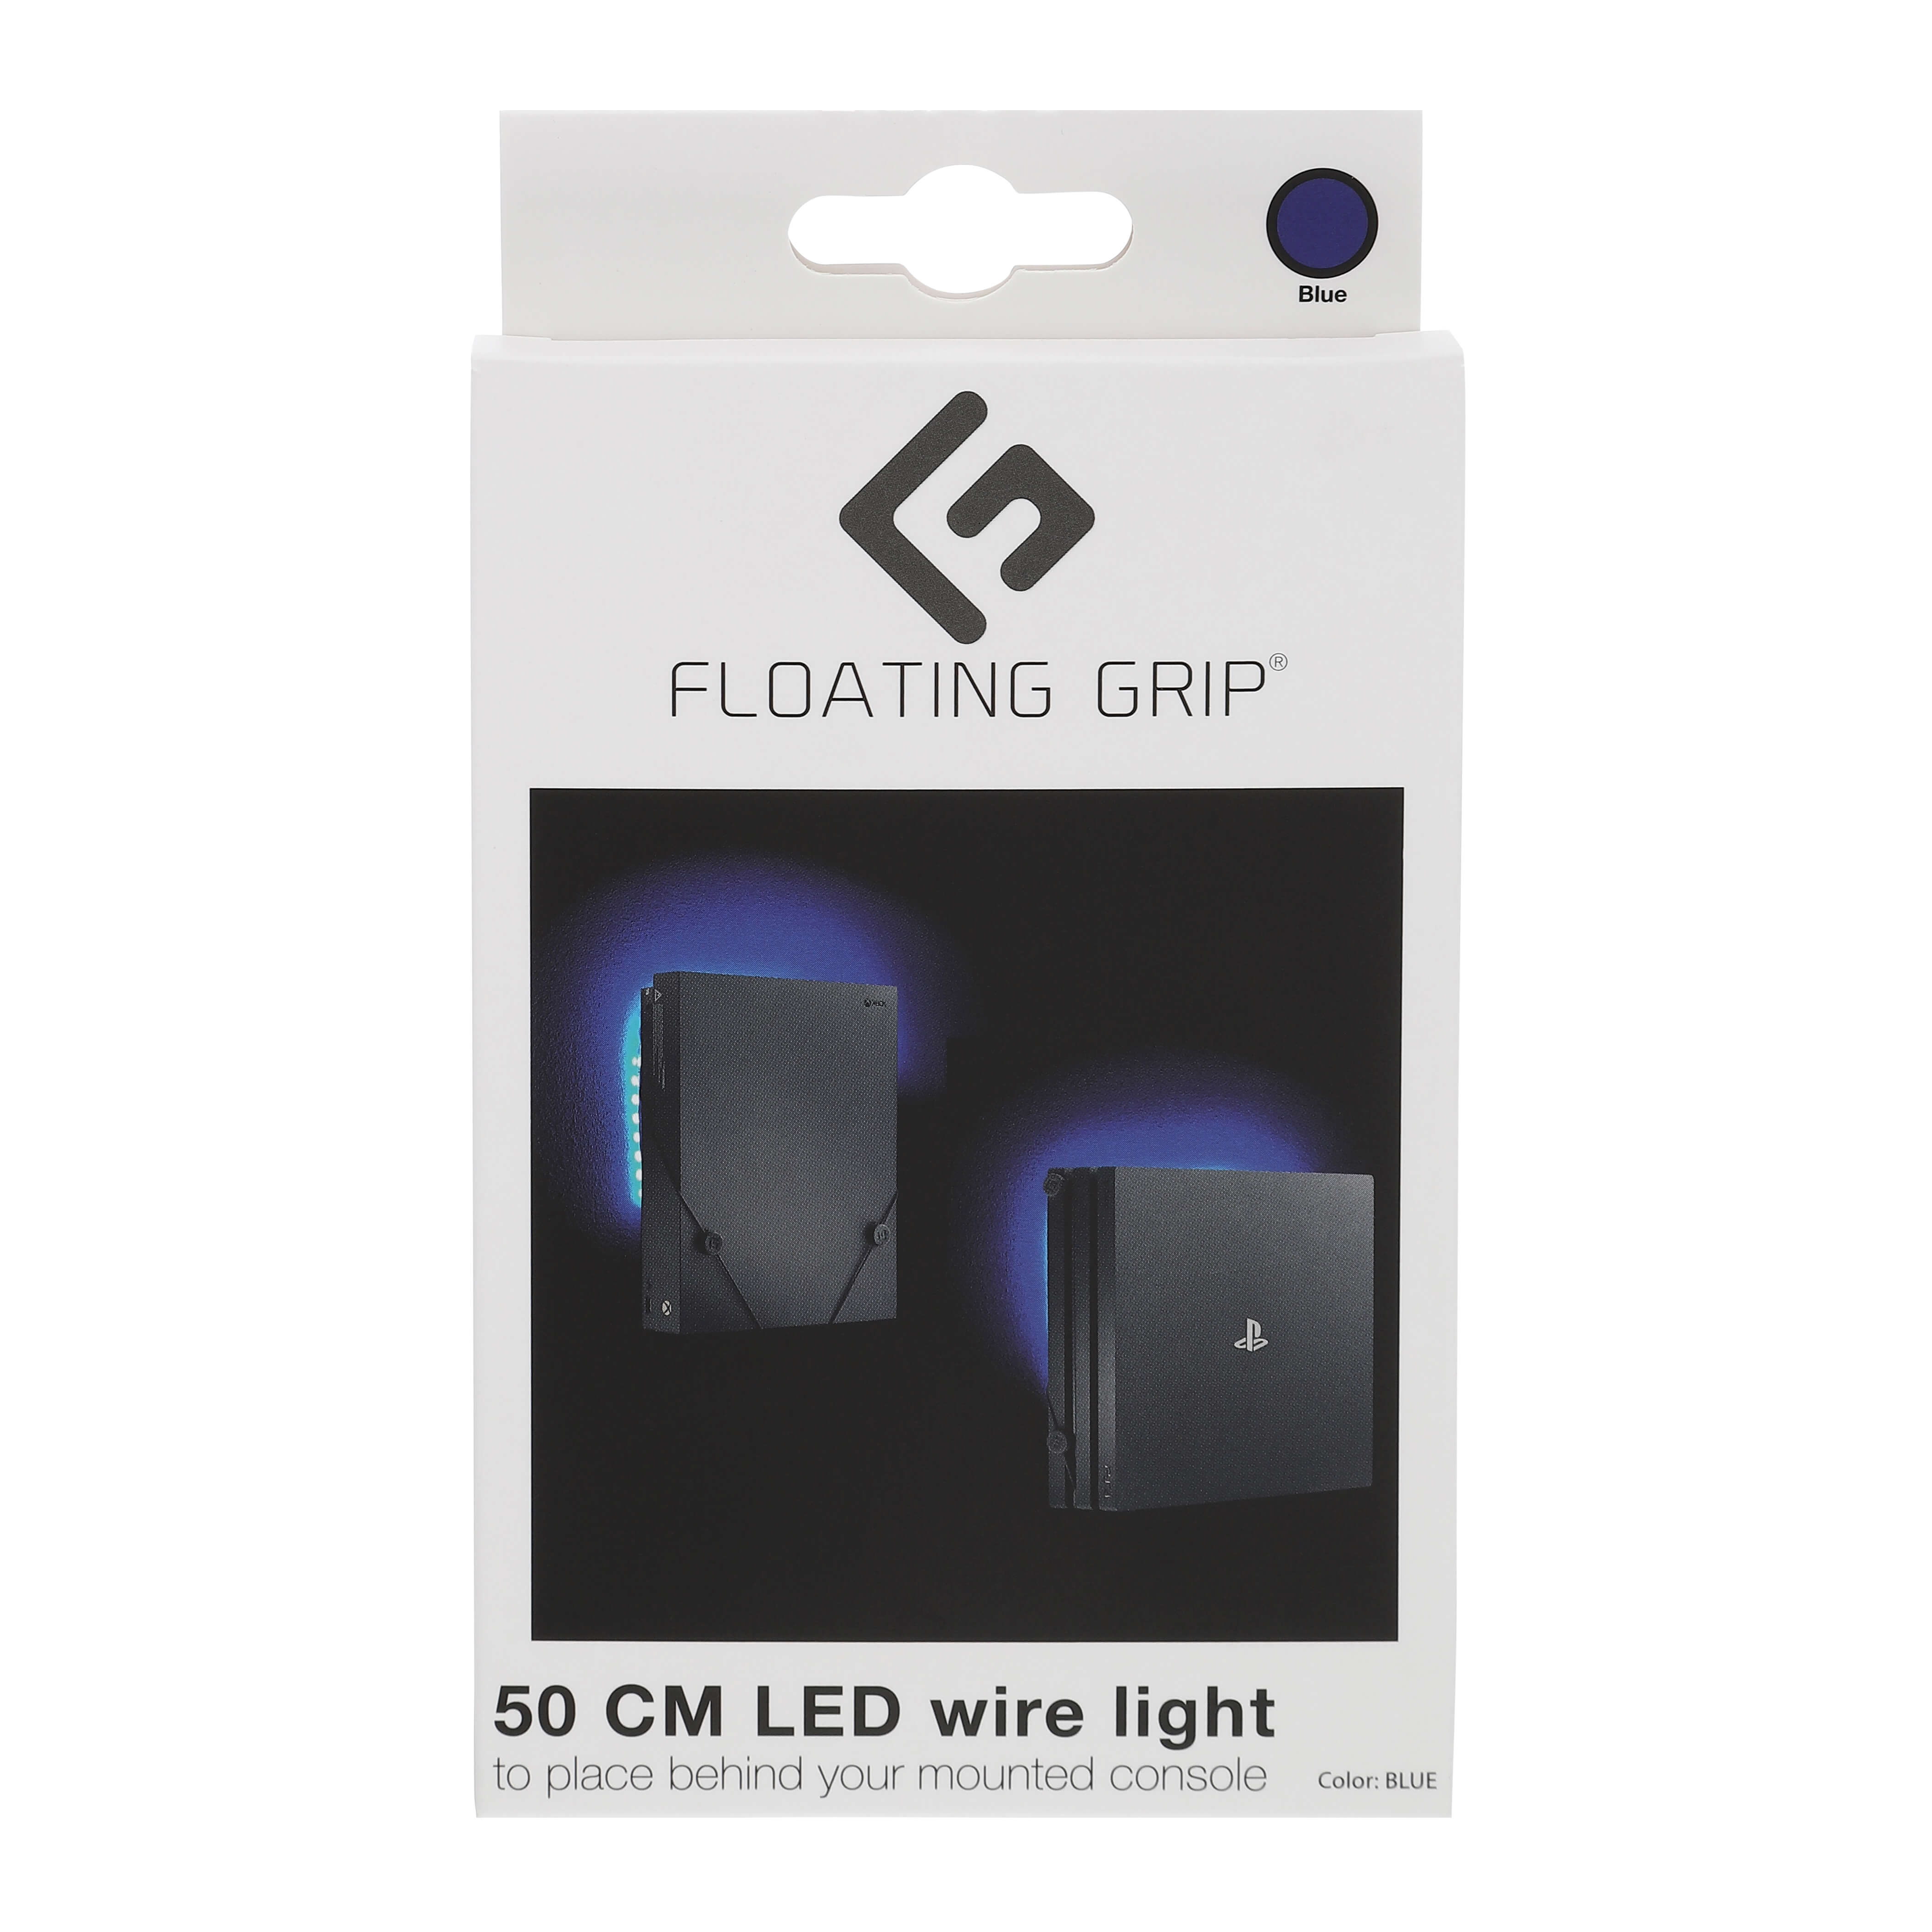 Floating Grip Led Wire Light with USB Blue